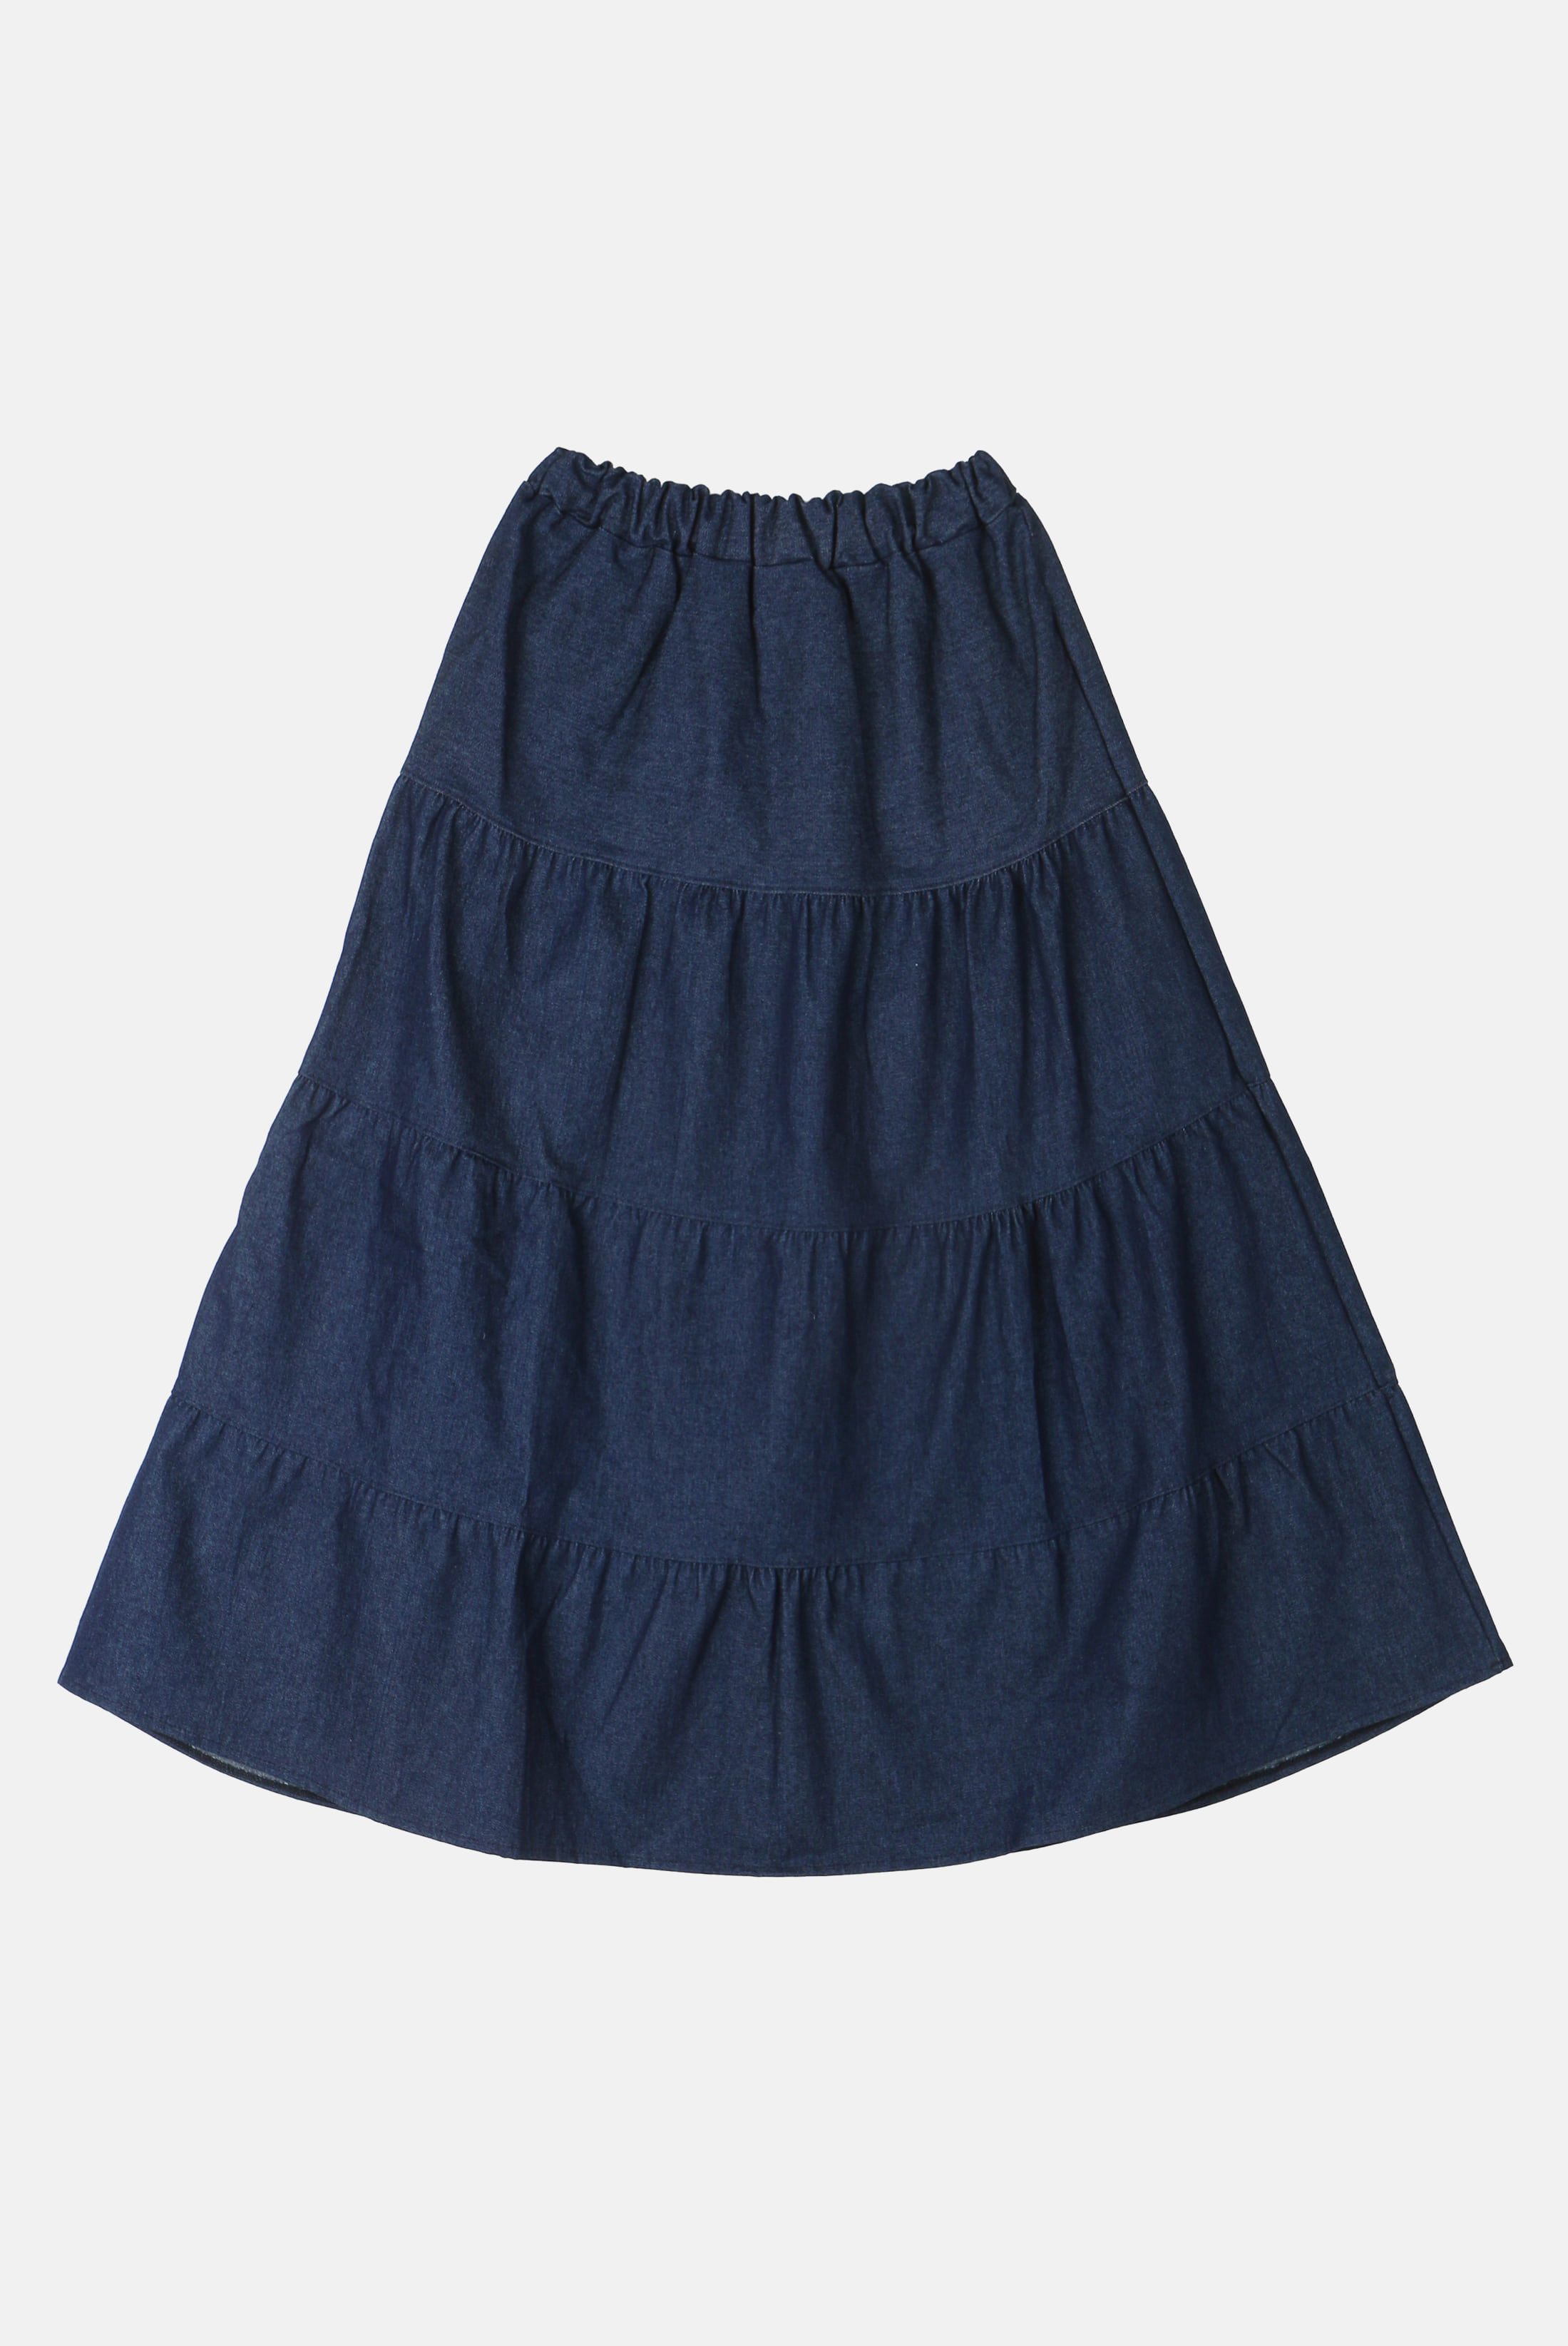 Denim_Cancan Skirt